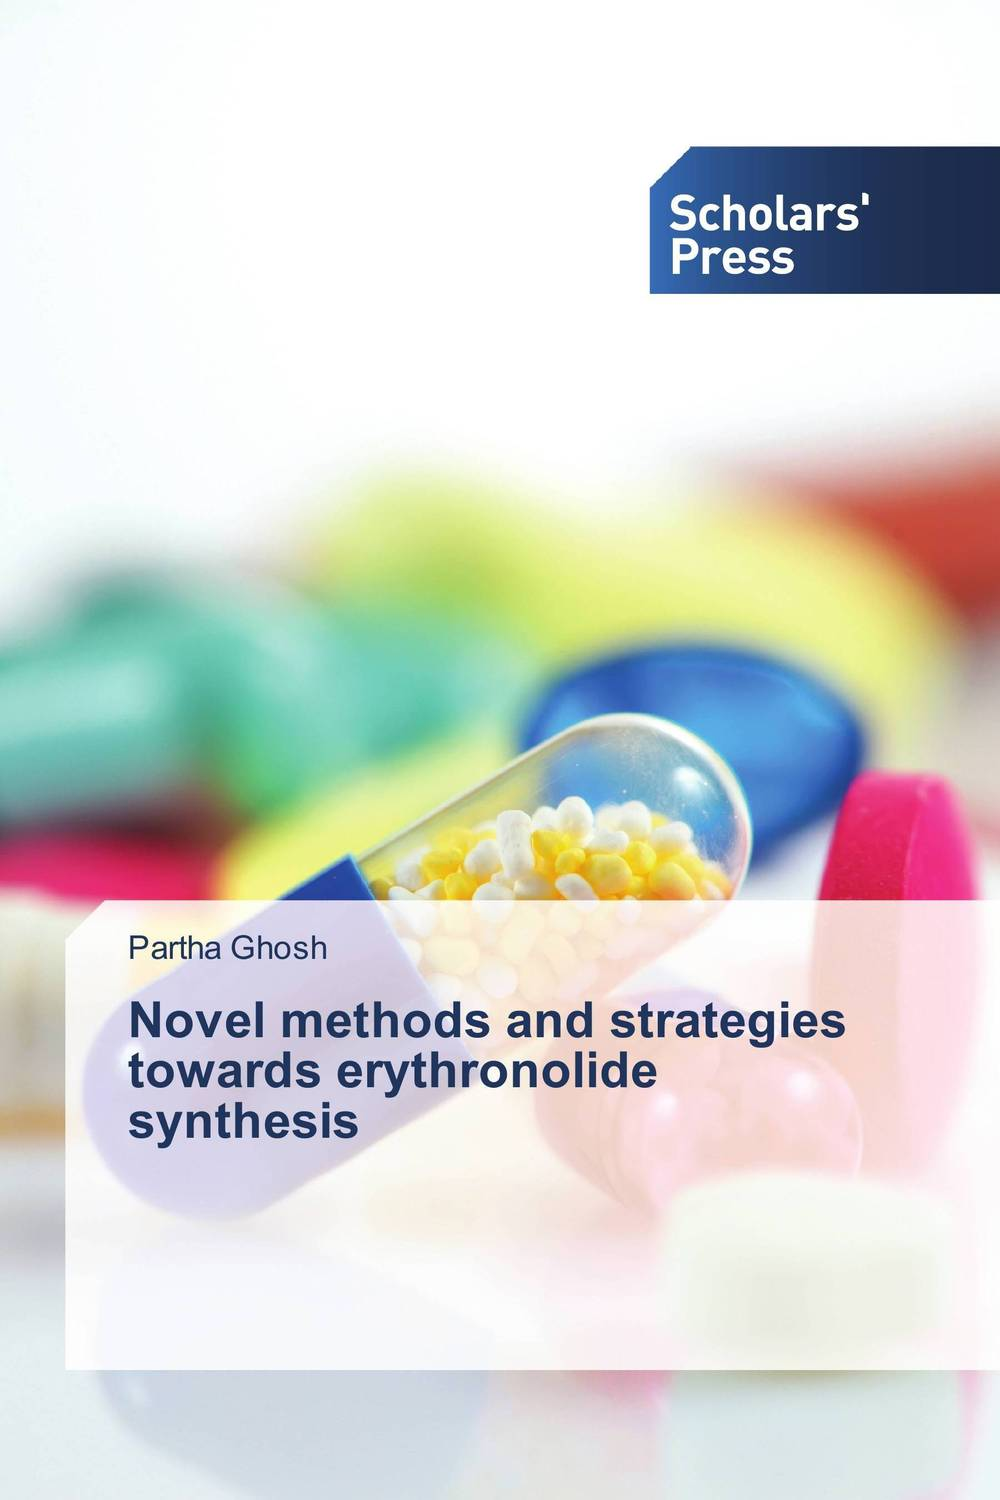 Novel methods and strategies towards erythronolide synthesis belousov a security features of banknotes and other documents methods of authentication manual денежные билеты бланки ценных бумаг и документов